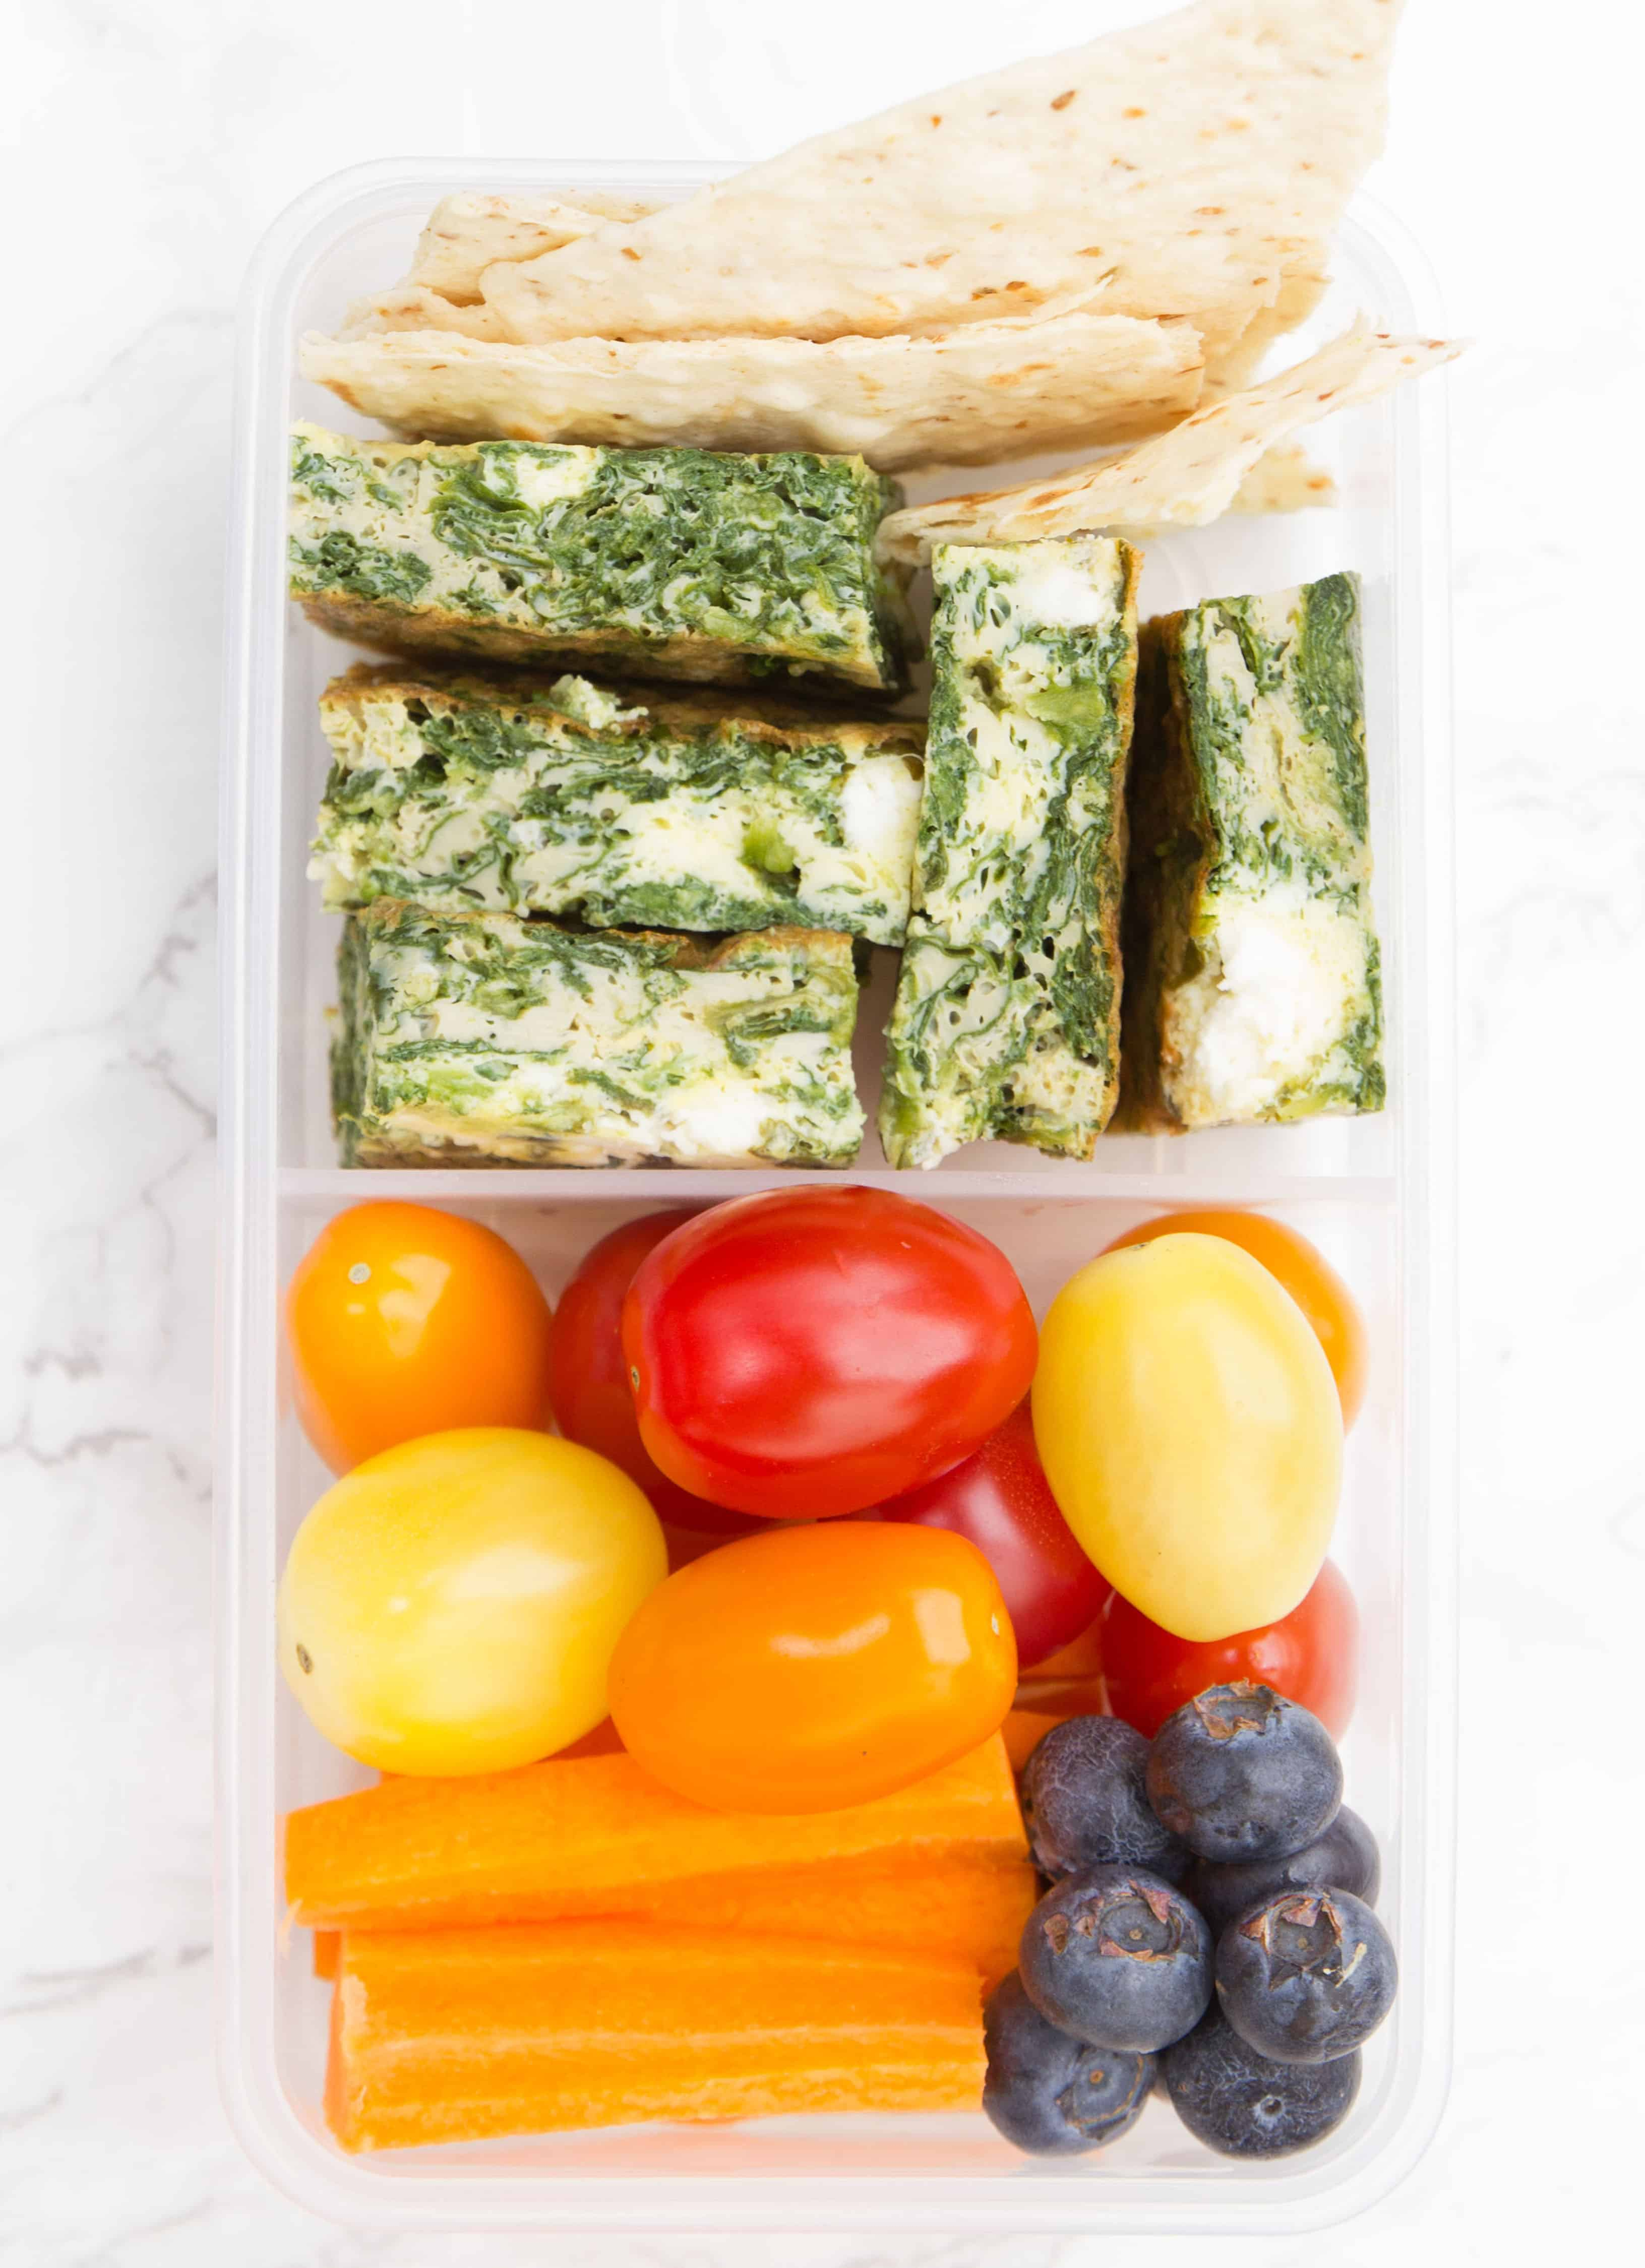 Yummy and healthy lunch box ideas for school. Recipe by The Clever Meal